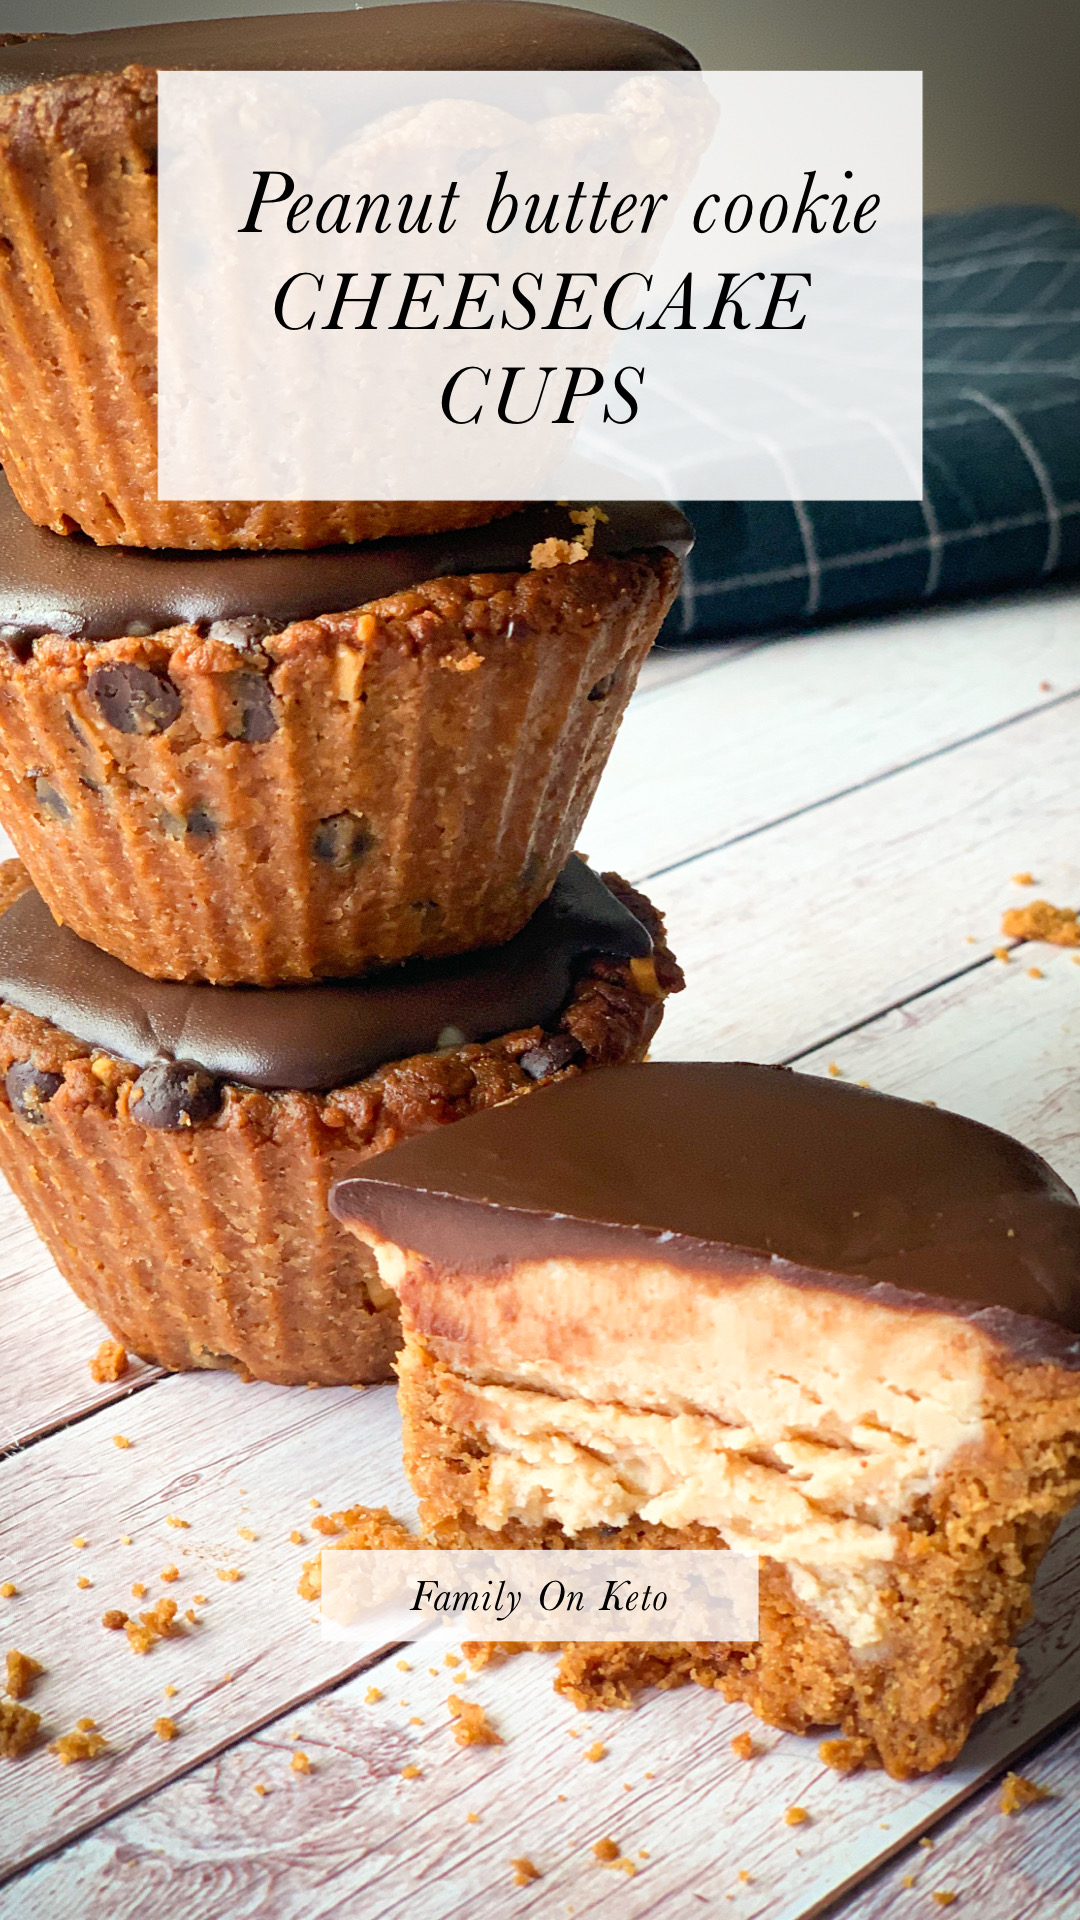 Picture of Peanut butter cookie cheesecake cups keto recipe